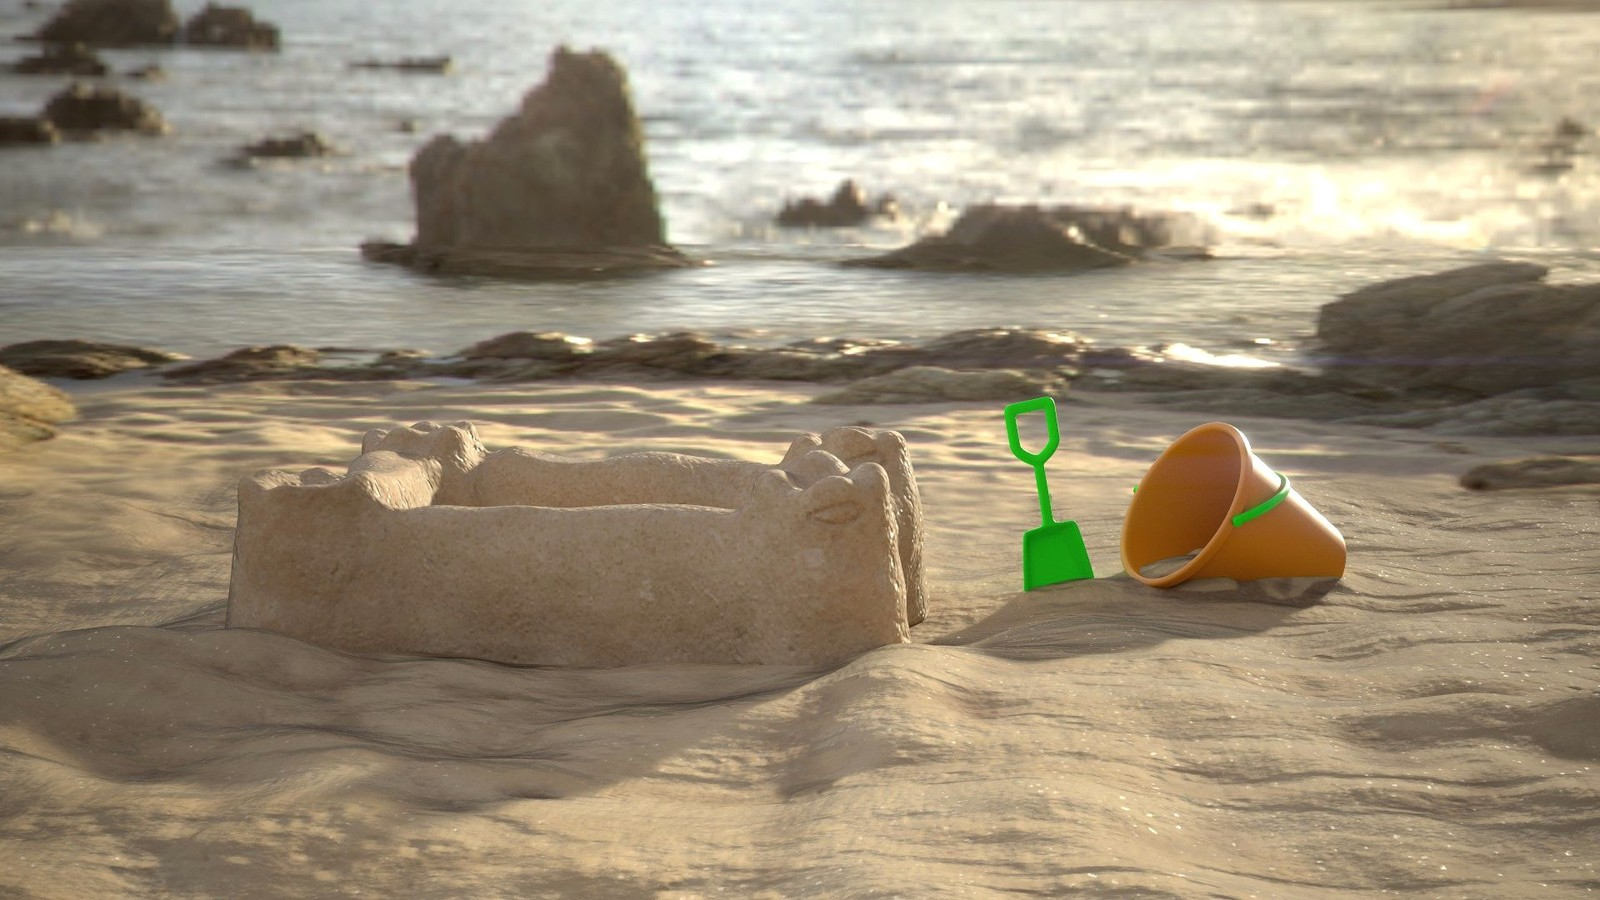 Sandcastle upon HDRI